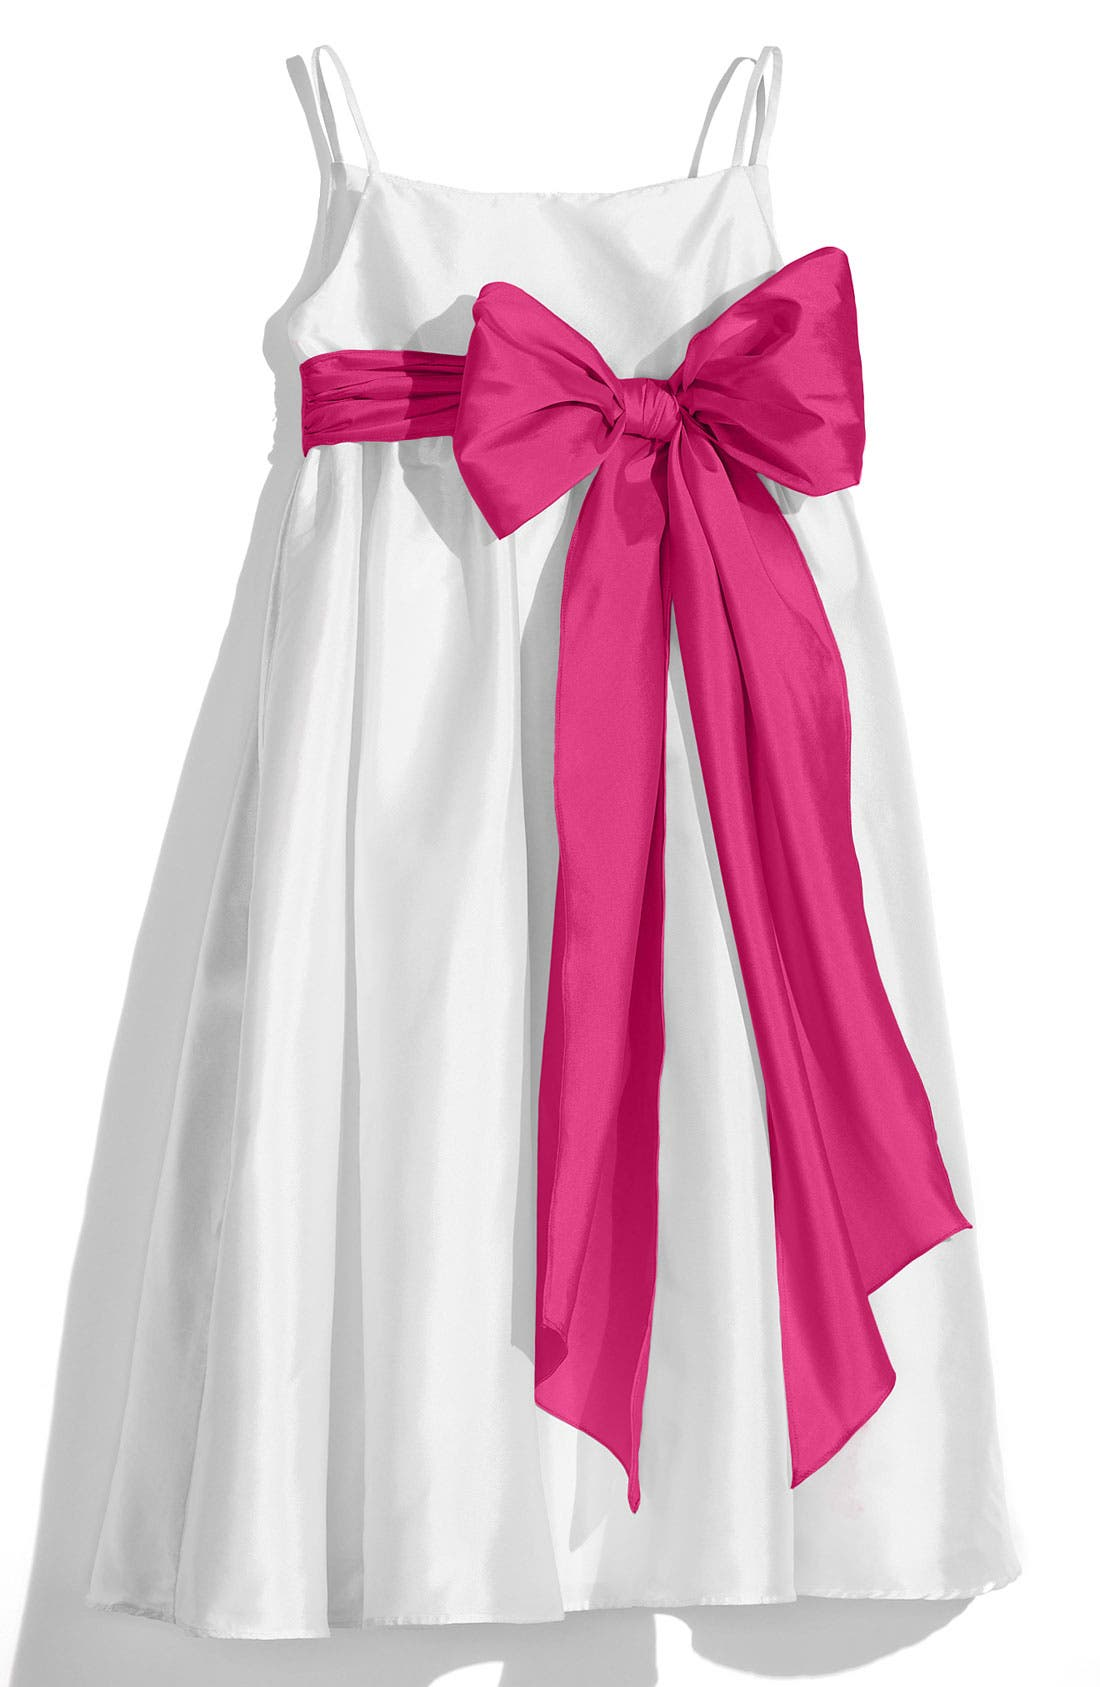 White Sleeveless Empire Waist Taffeta Dress,                         Main,                         color, 651